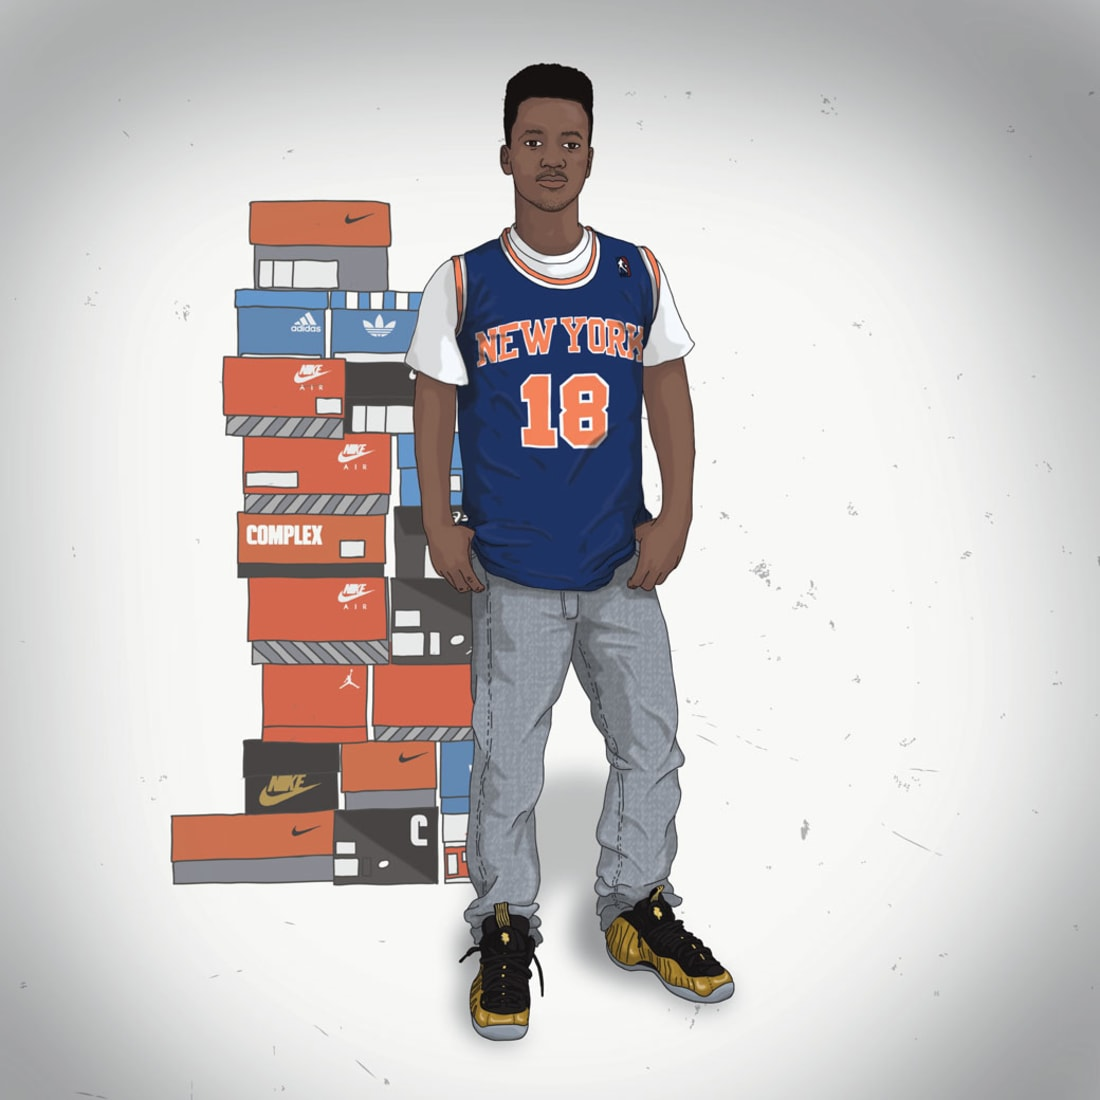 sneaker head According to urban dictionary, a certified sneakerhead is a person who collects  limited, rare, og, or flat out exclusive kicks usually the.